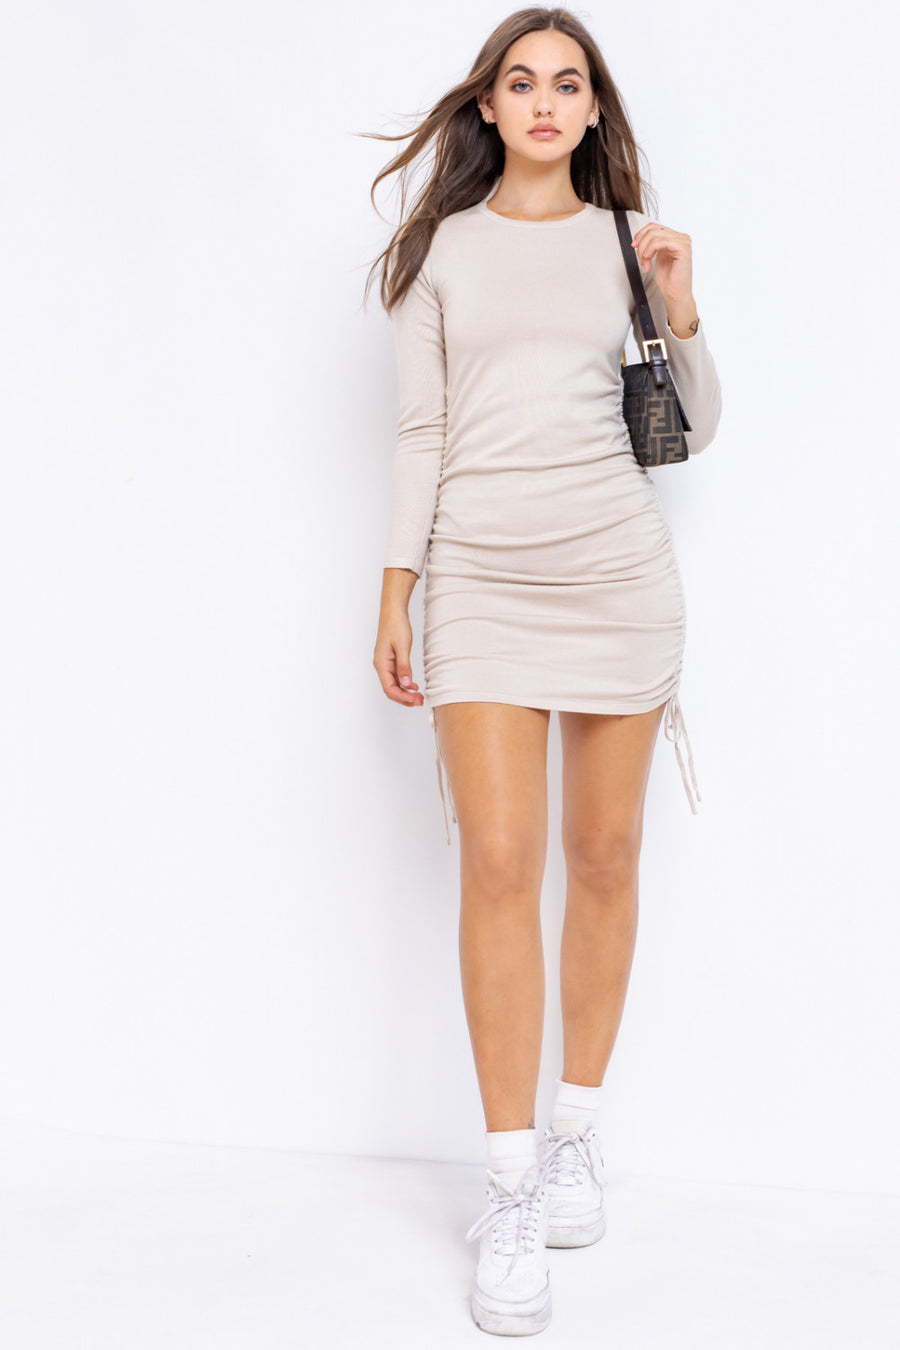 LONG SLEEVE ROUND-NECK SIDE RUCHING DETAIL KINT DRESS - TAUPE